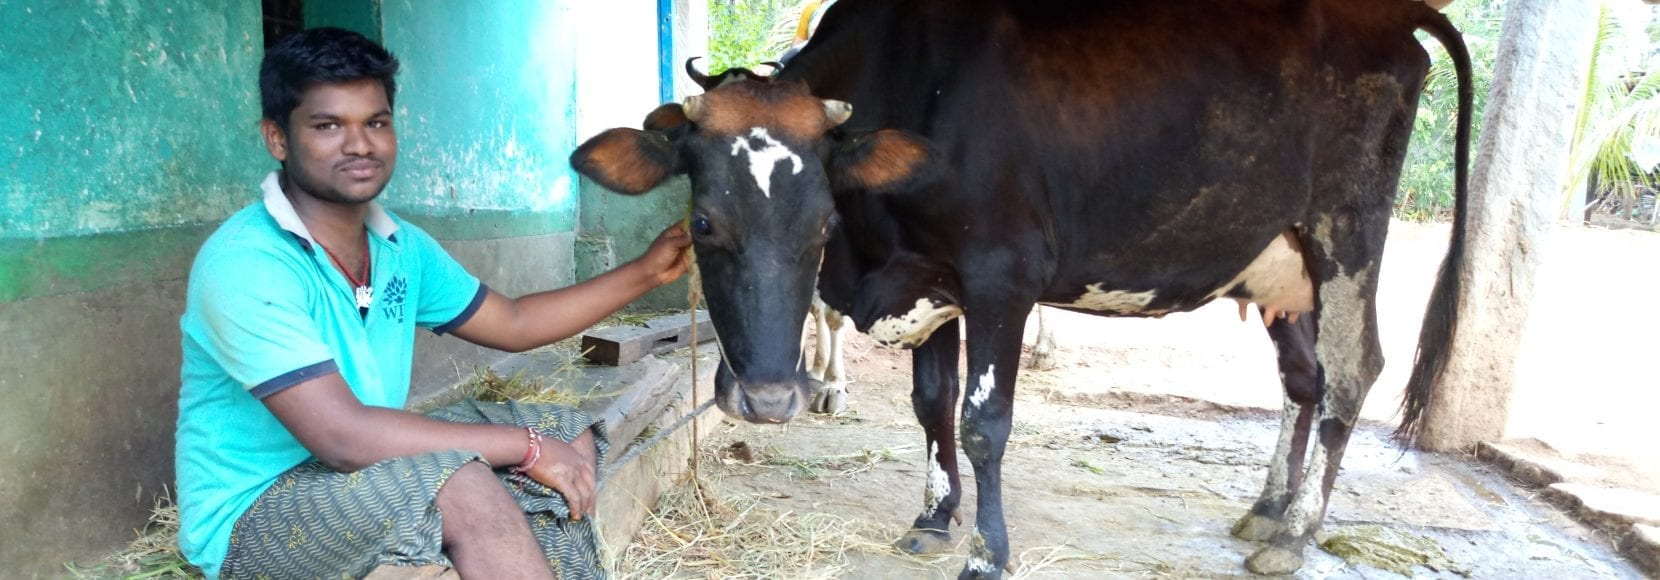 Youth economic opportunity is a benefit seen by countless TechnoServe program participants like Suresha from the Cargill Agri-Fellows program in India with his newly purchased cow